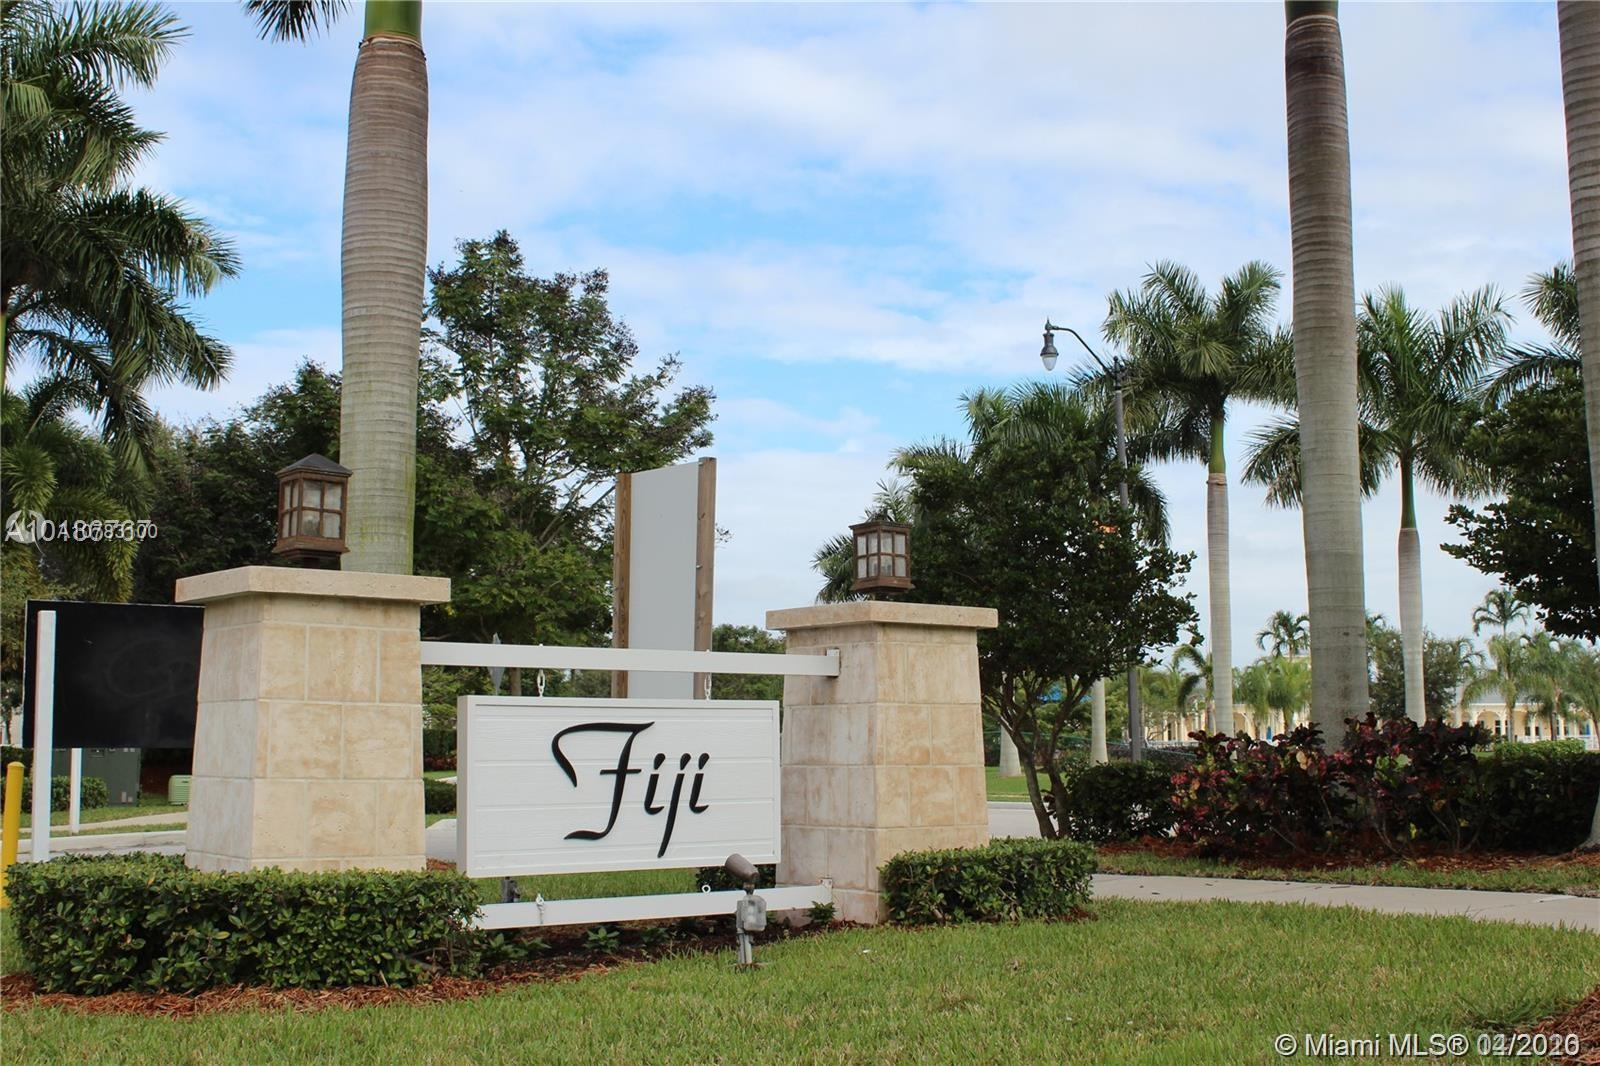 134 SE 28th Ter #9, Homestead, FL 33033 - Homestead, FL real estate listing